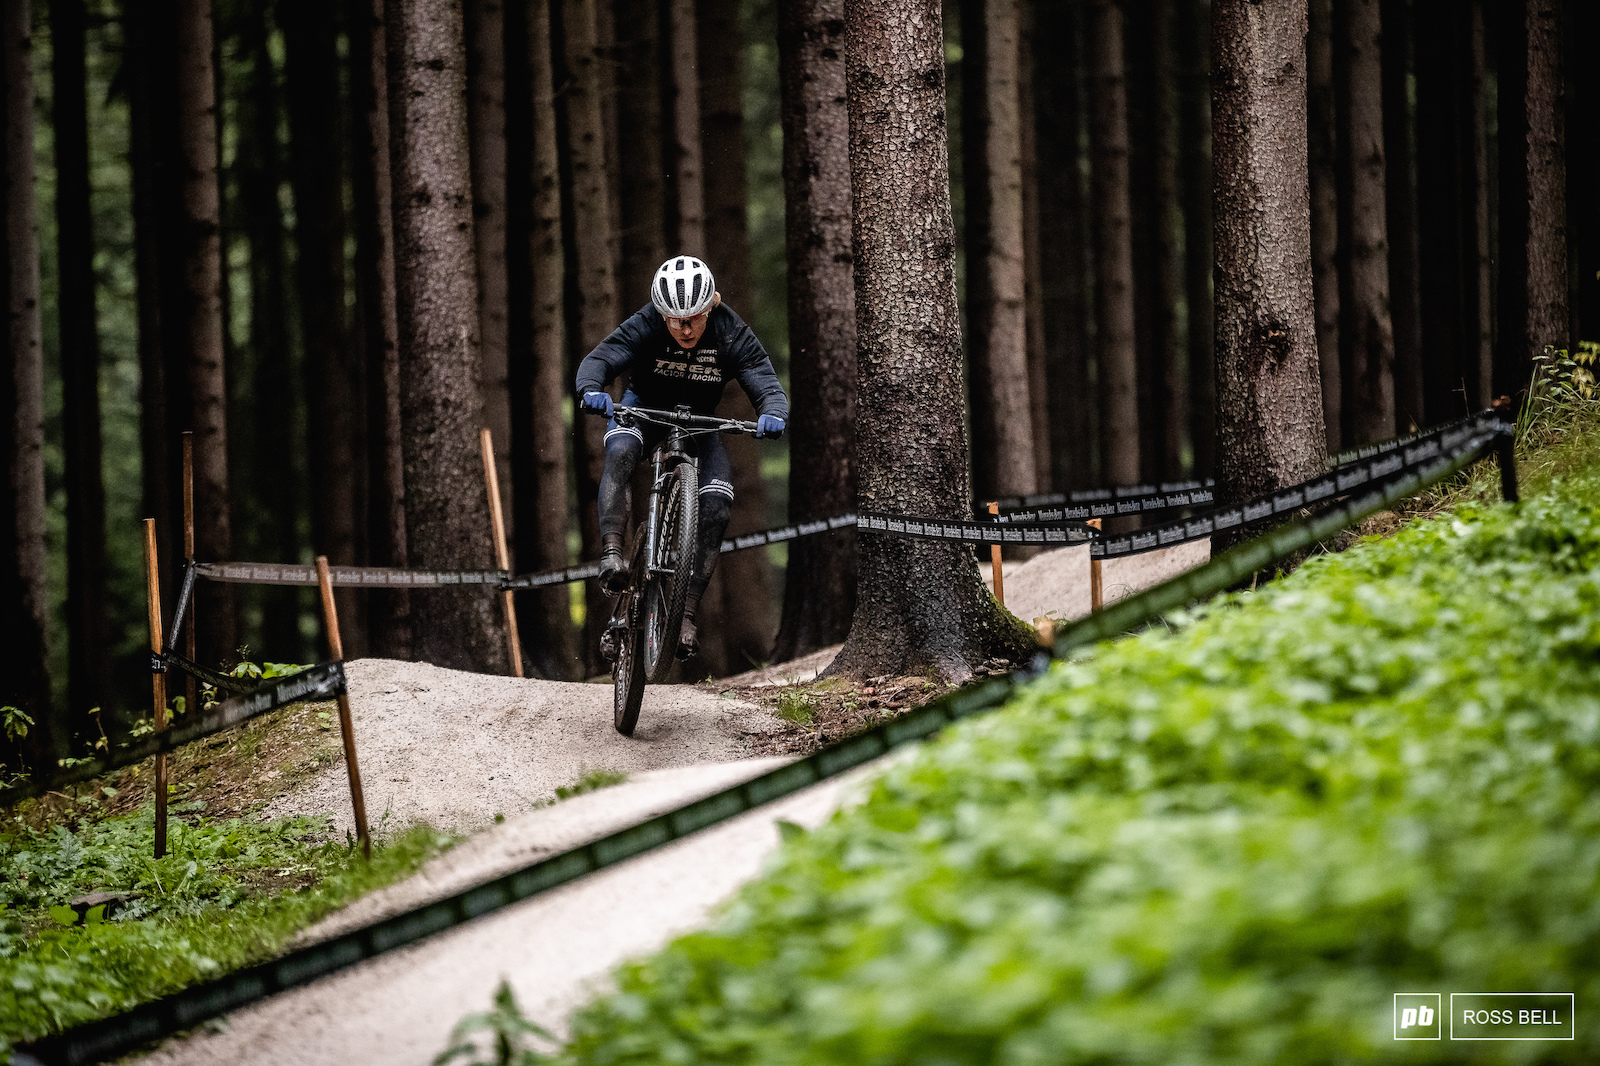 Anton Cooper finding his flow in the new section which will be used to keep things fresh between the 2 races.